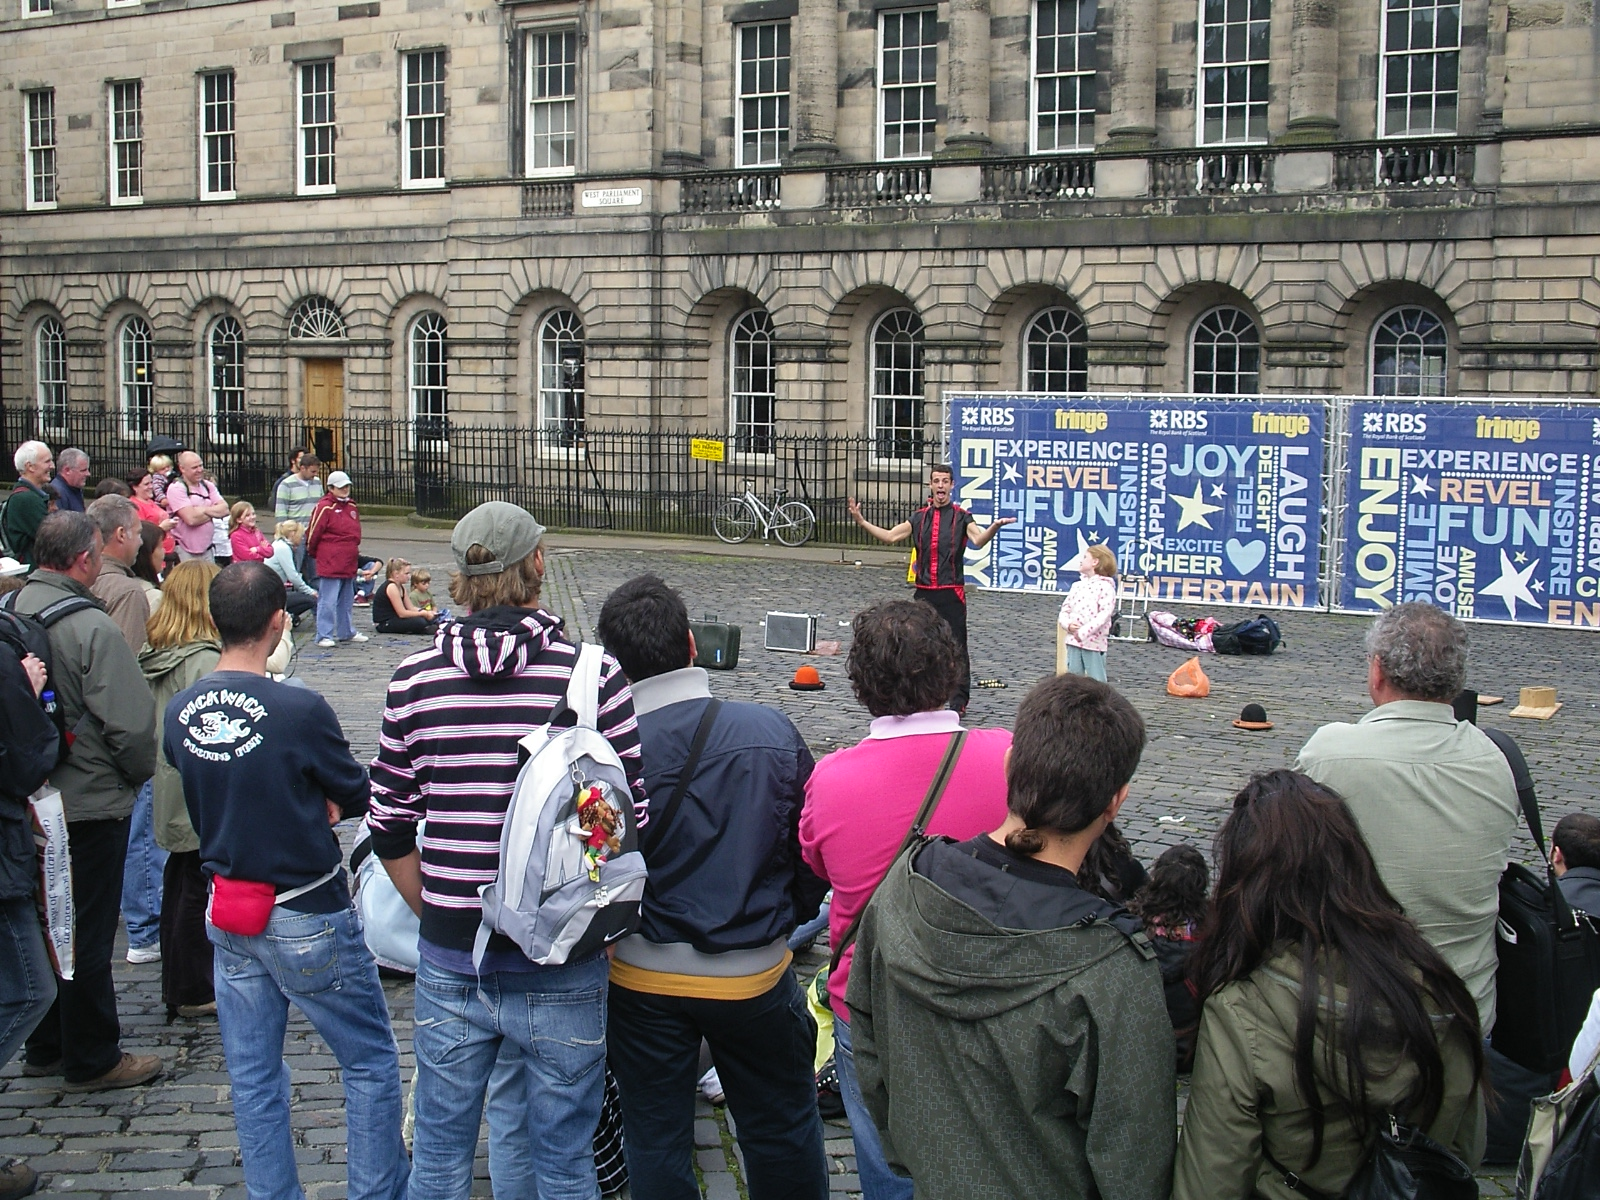 Street performance at a city square, Edinburgh, in Fringe Festival